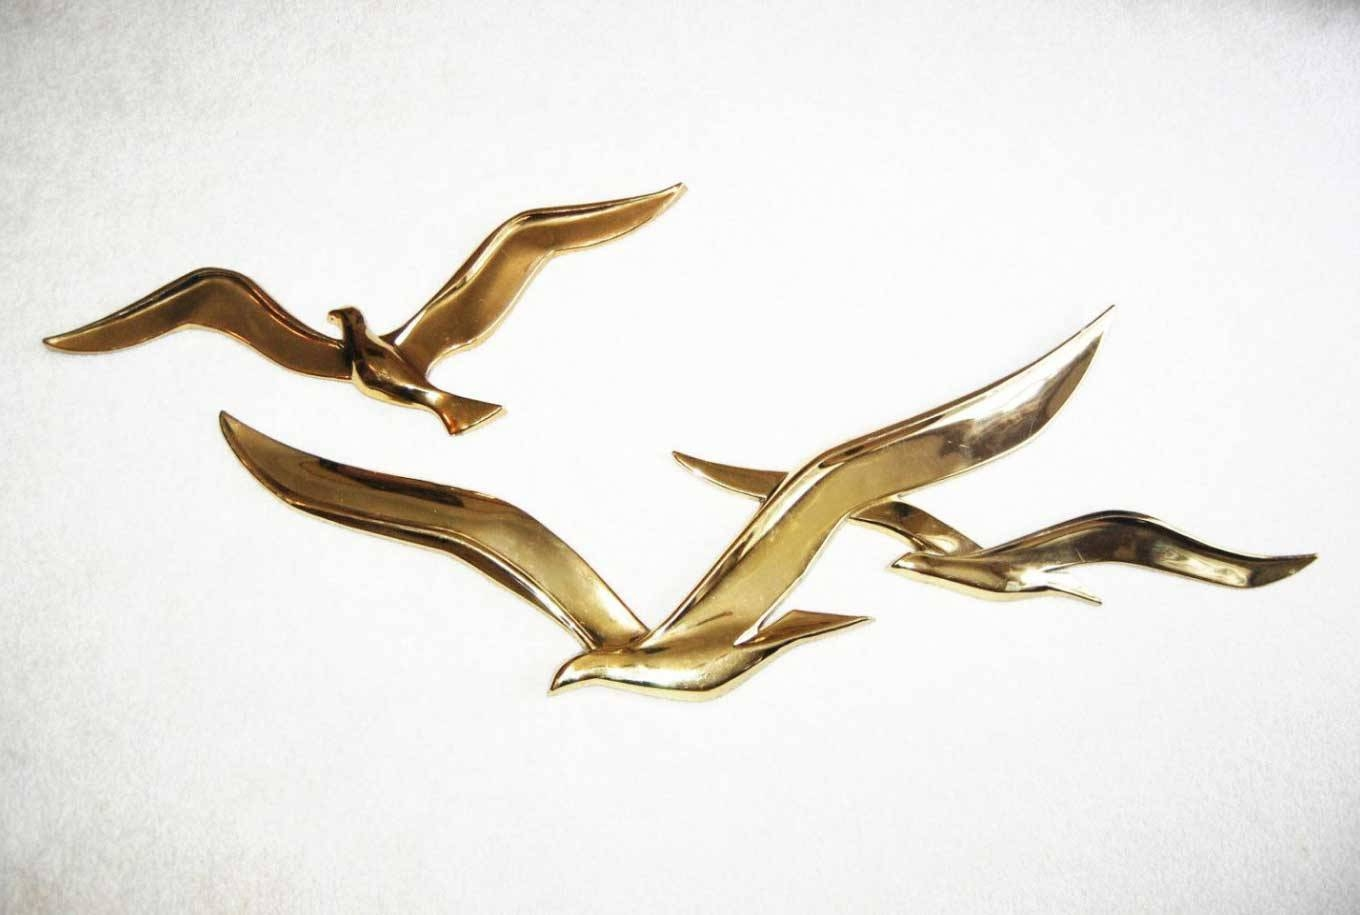 Flying Birds Metal Wall Art Gold Sculpture | Home Interior & Exterior Inside Most Recent Birds In Flight Metal Wall Art (View 9 of 30)